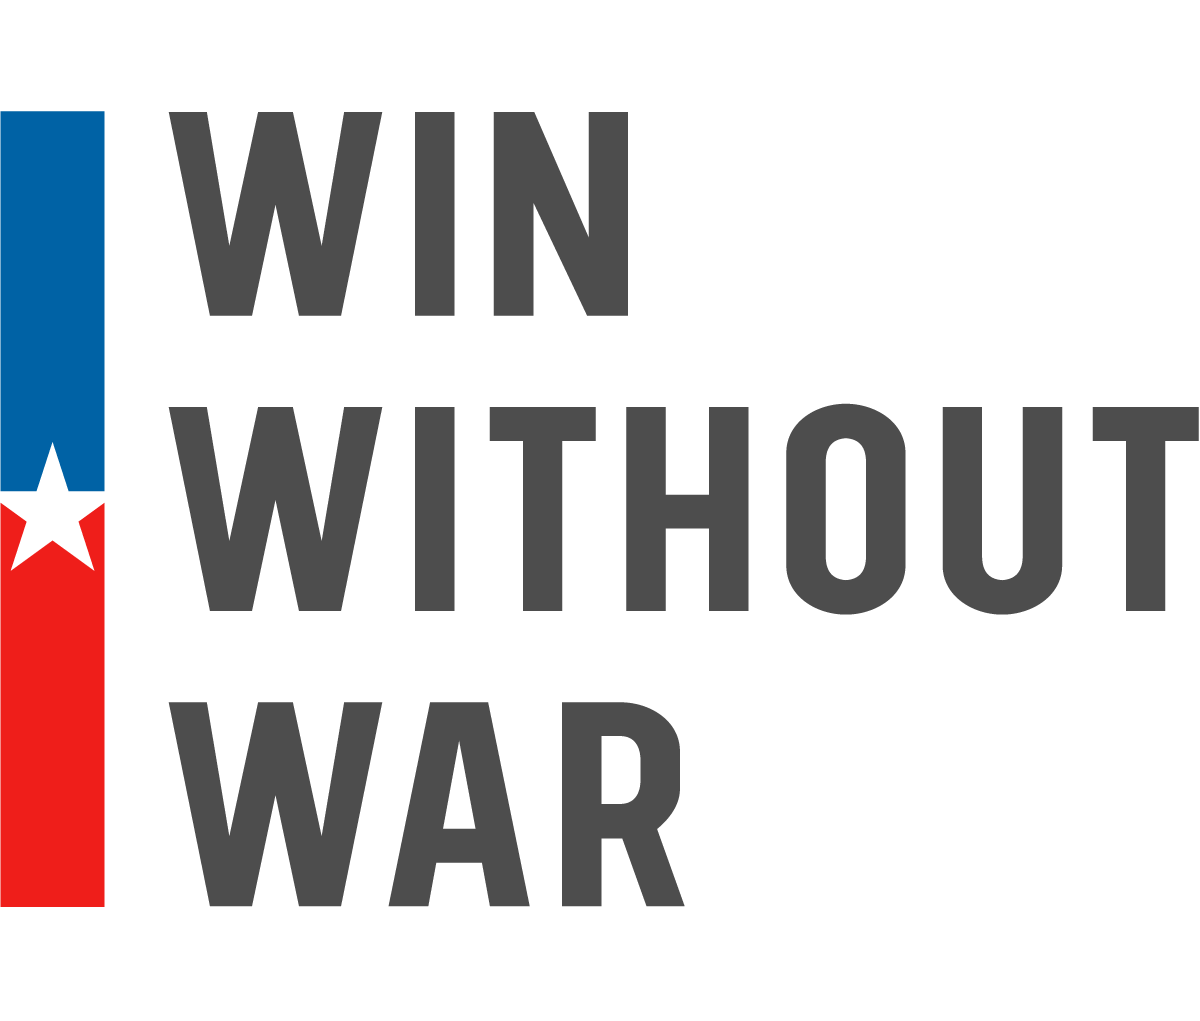 win-without-war-logo-square.png